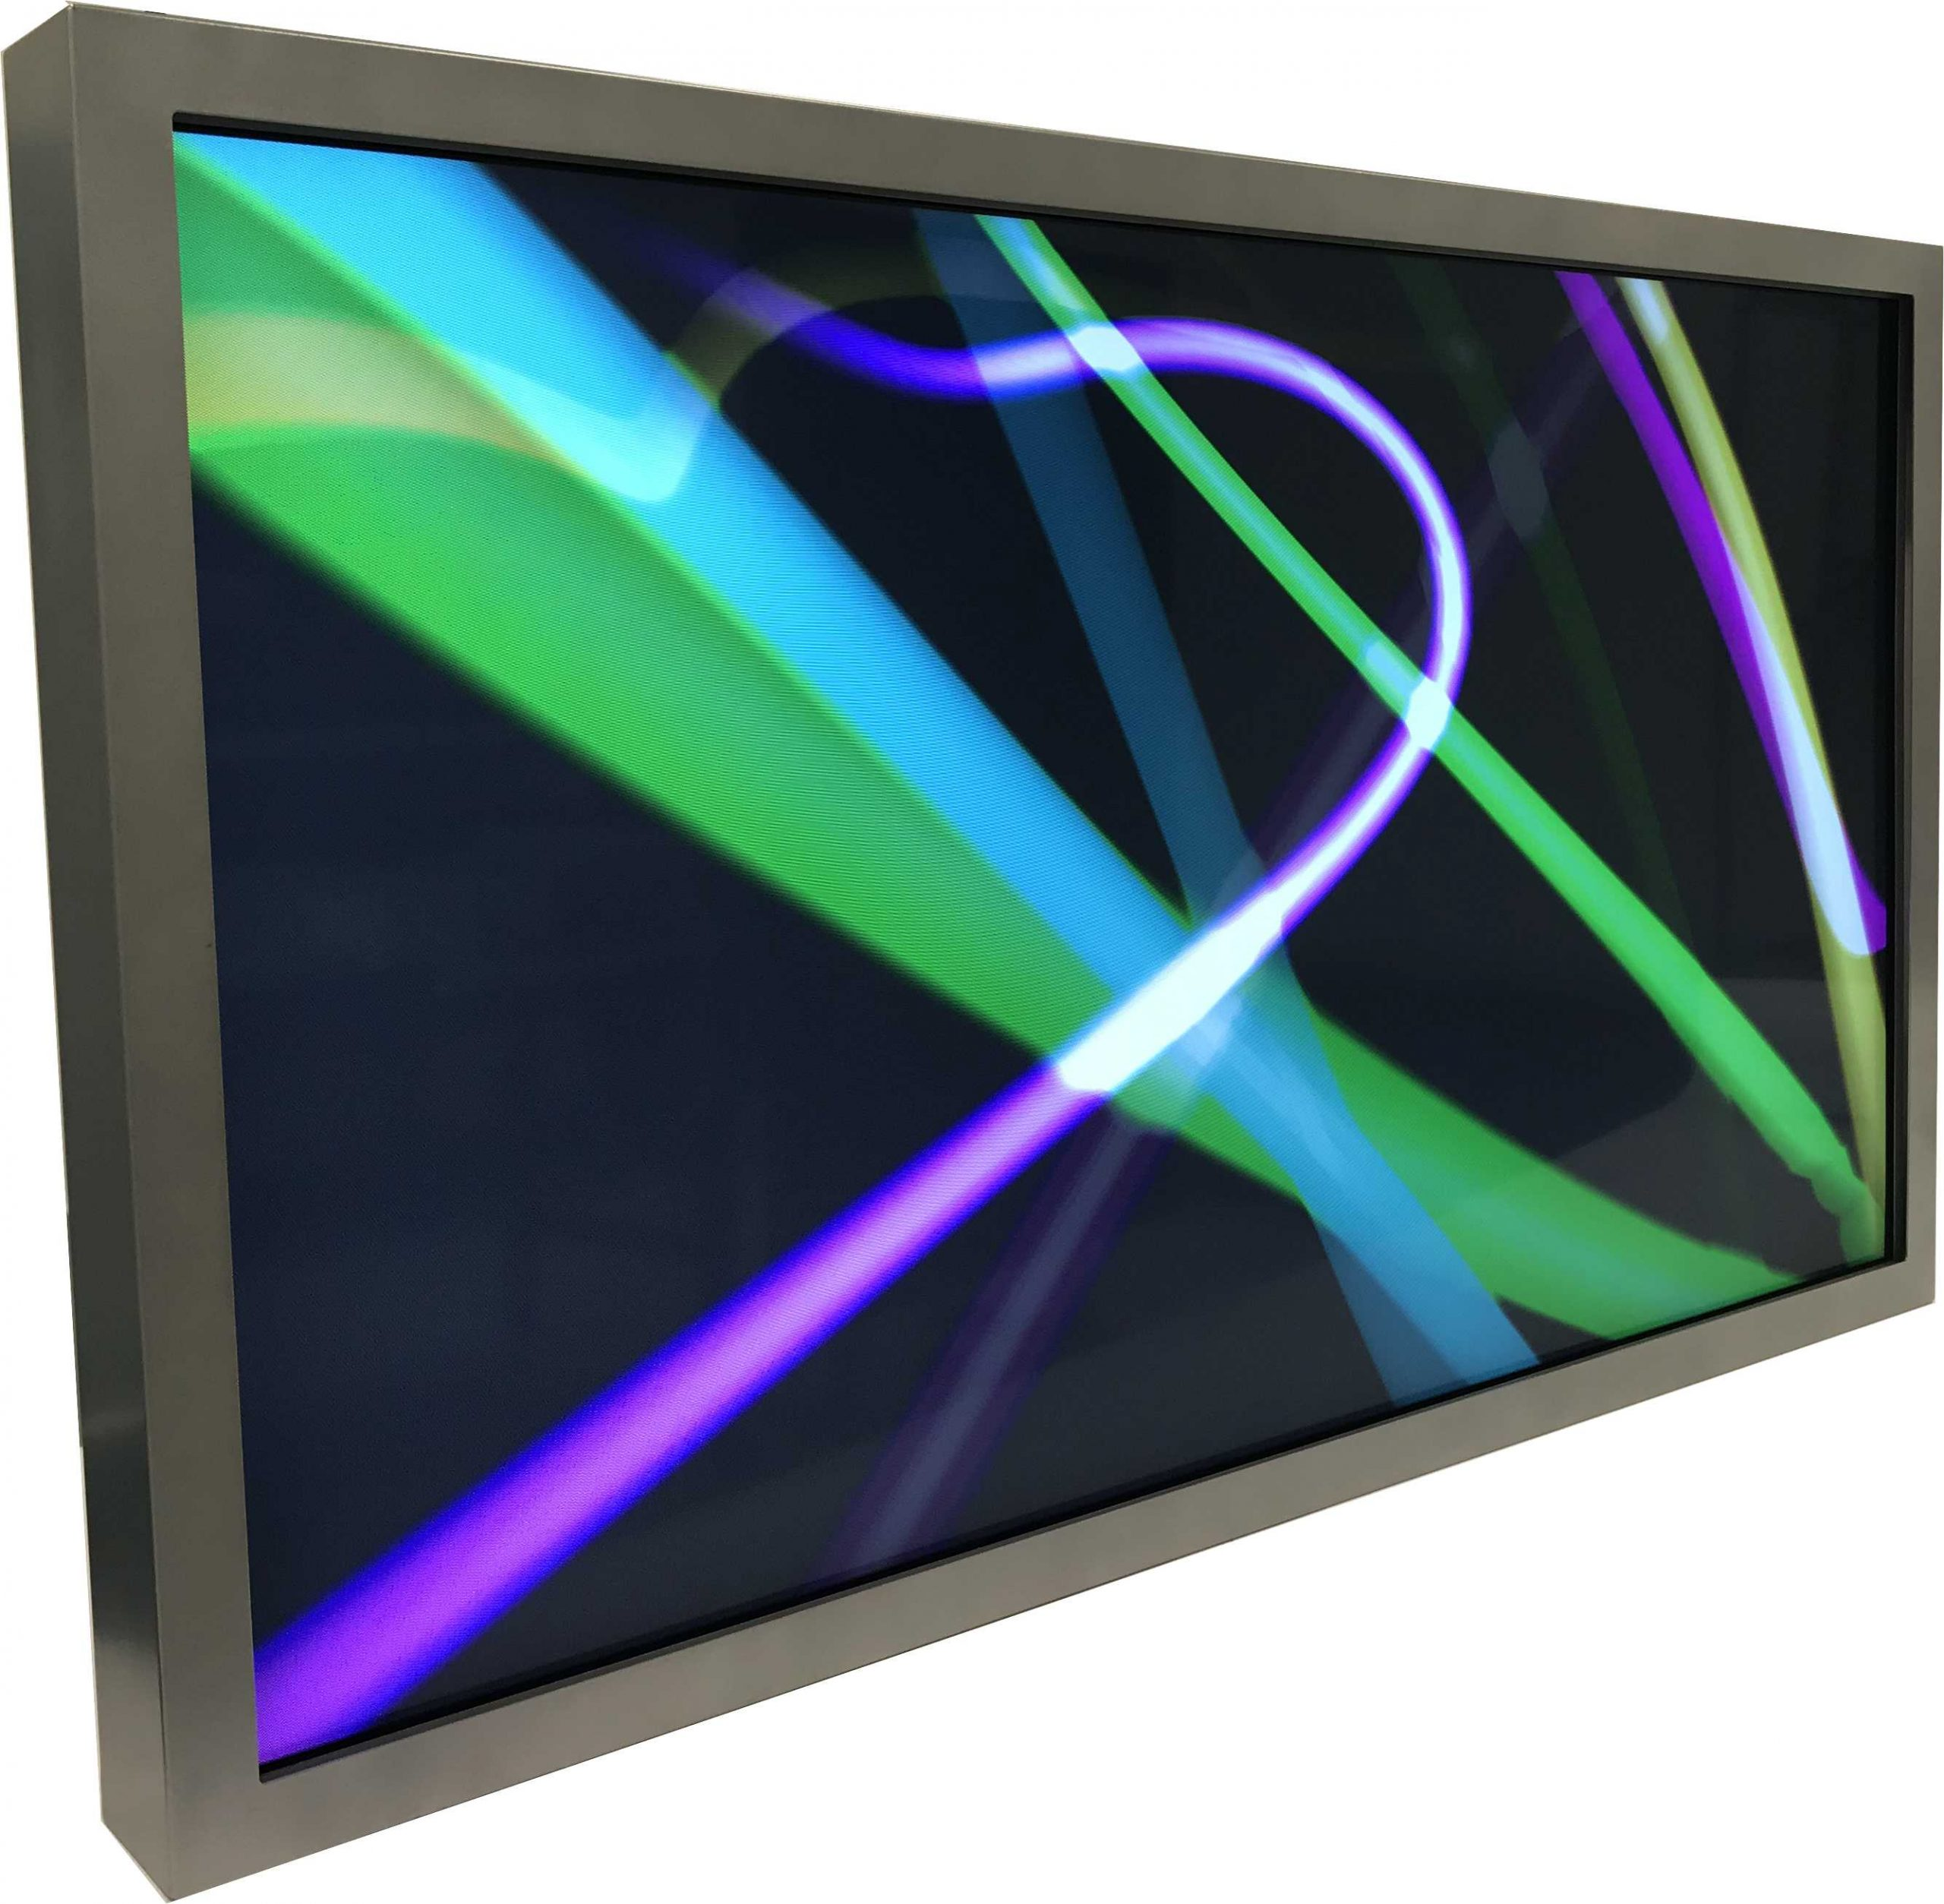 Full-Outdoor 32″ LCD Monitor / Touchscreen